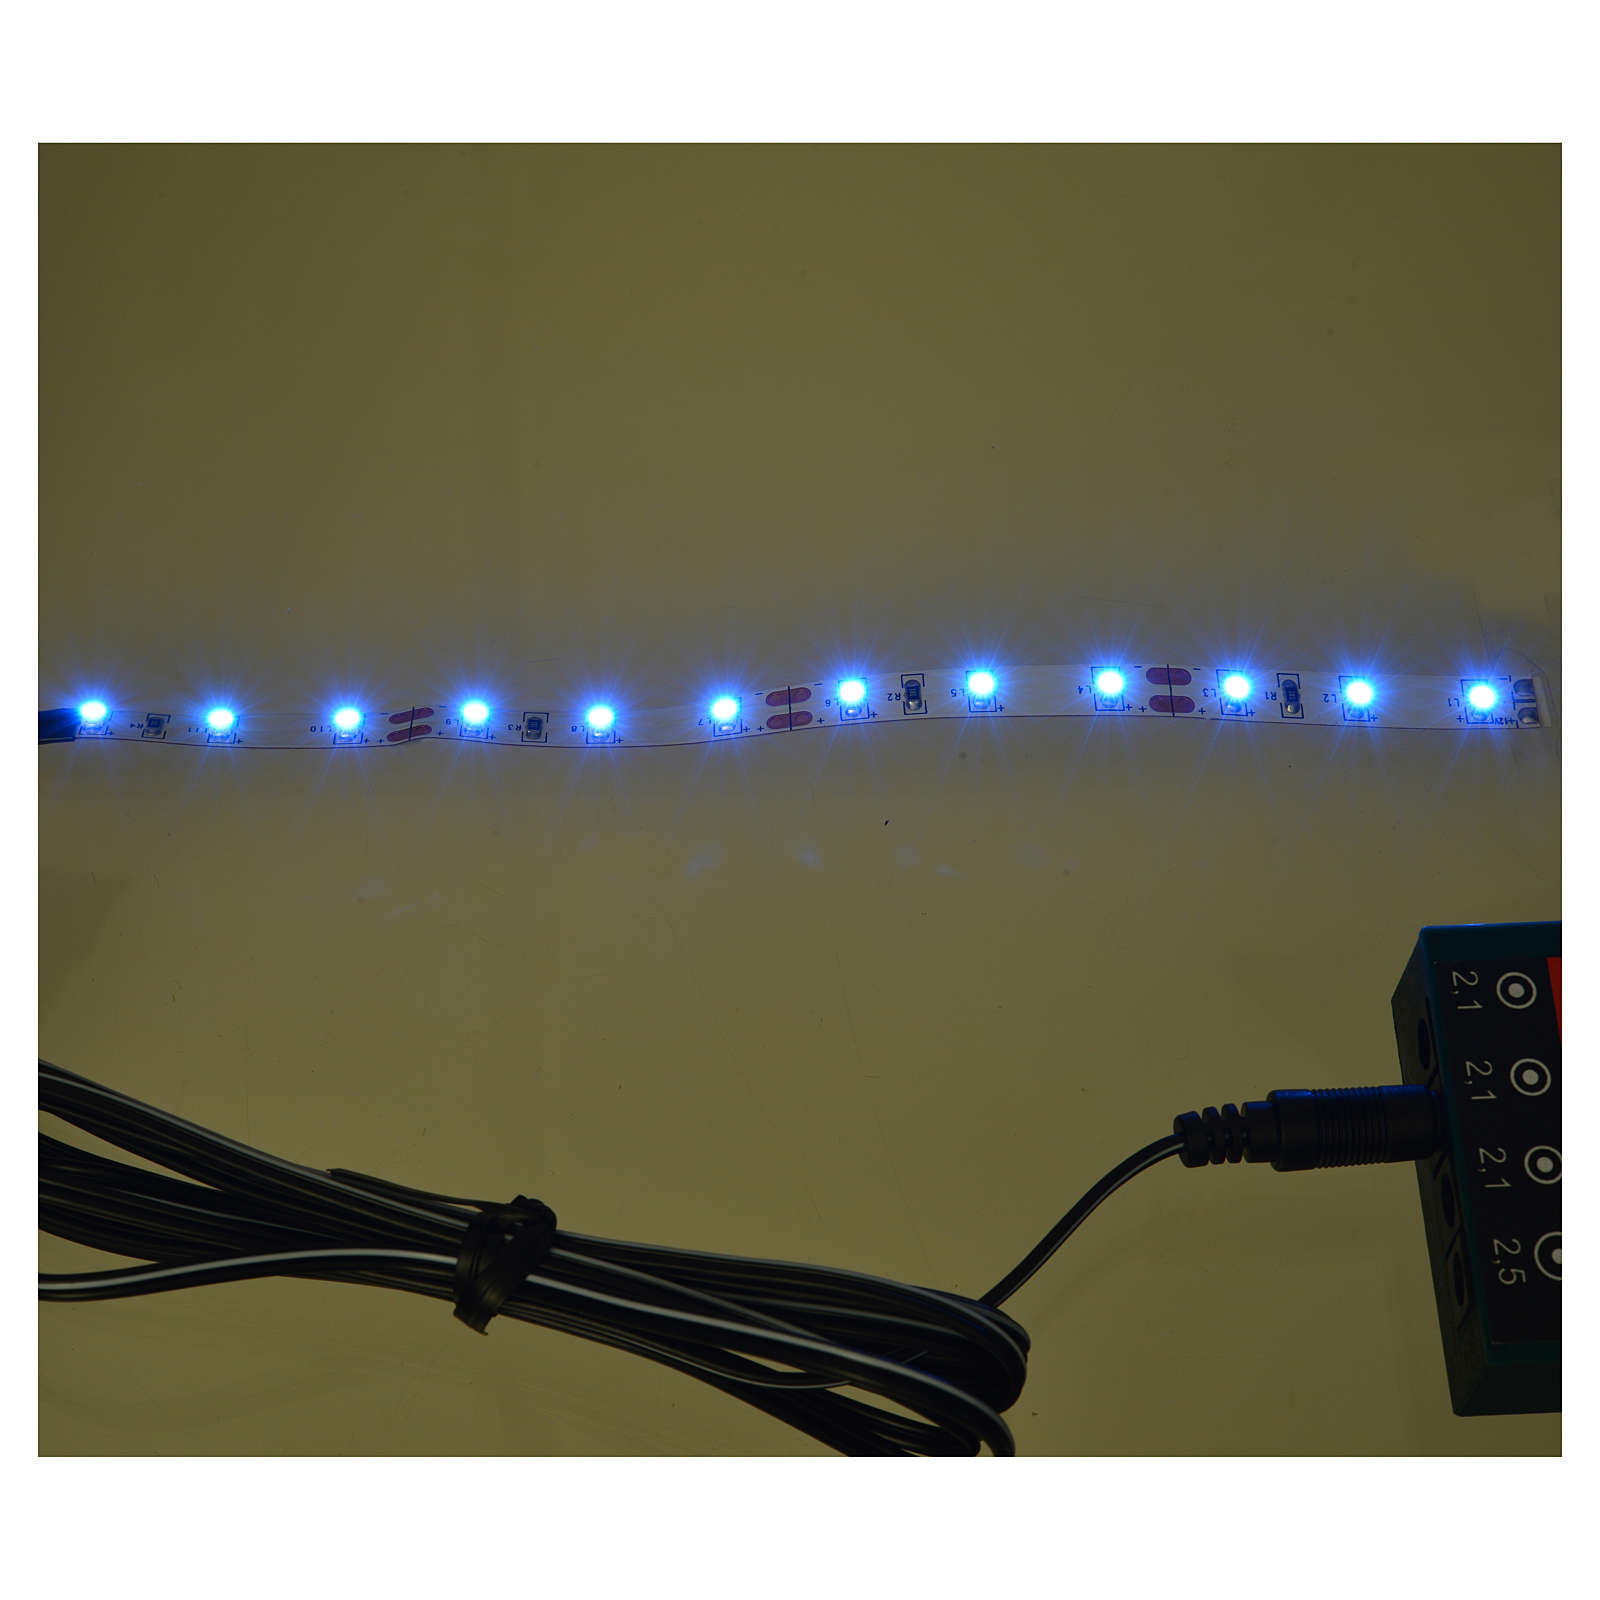 LED strip with 12 lights 0,8x16cm, blue for Frisalight 4